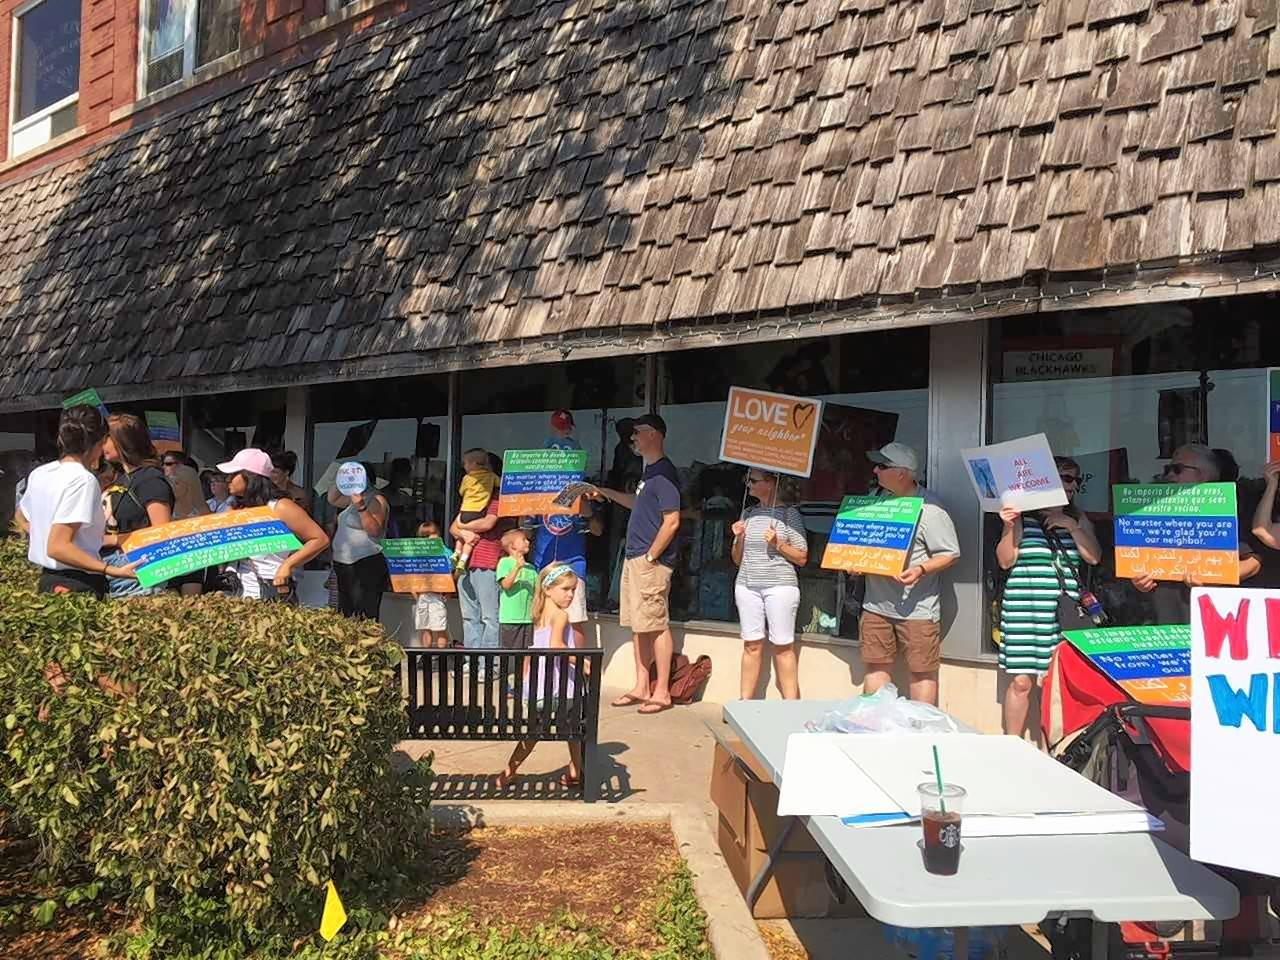 More than 100 protesters wrapped themselves around the building at 101 W. Front Street to support diversity in Wheaton.